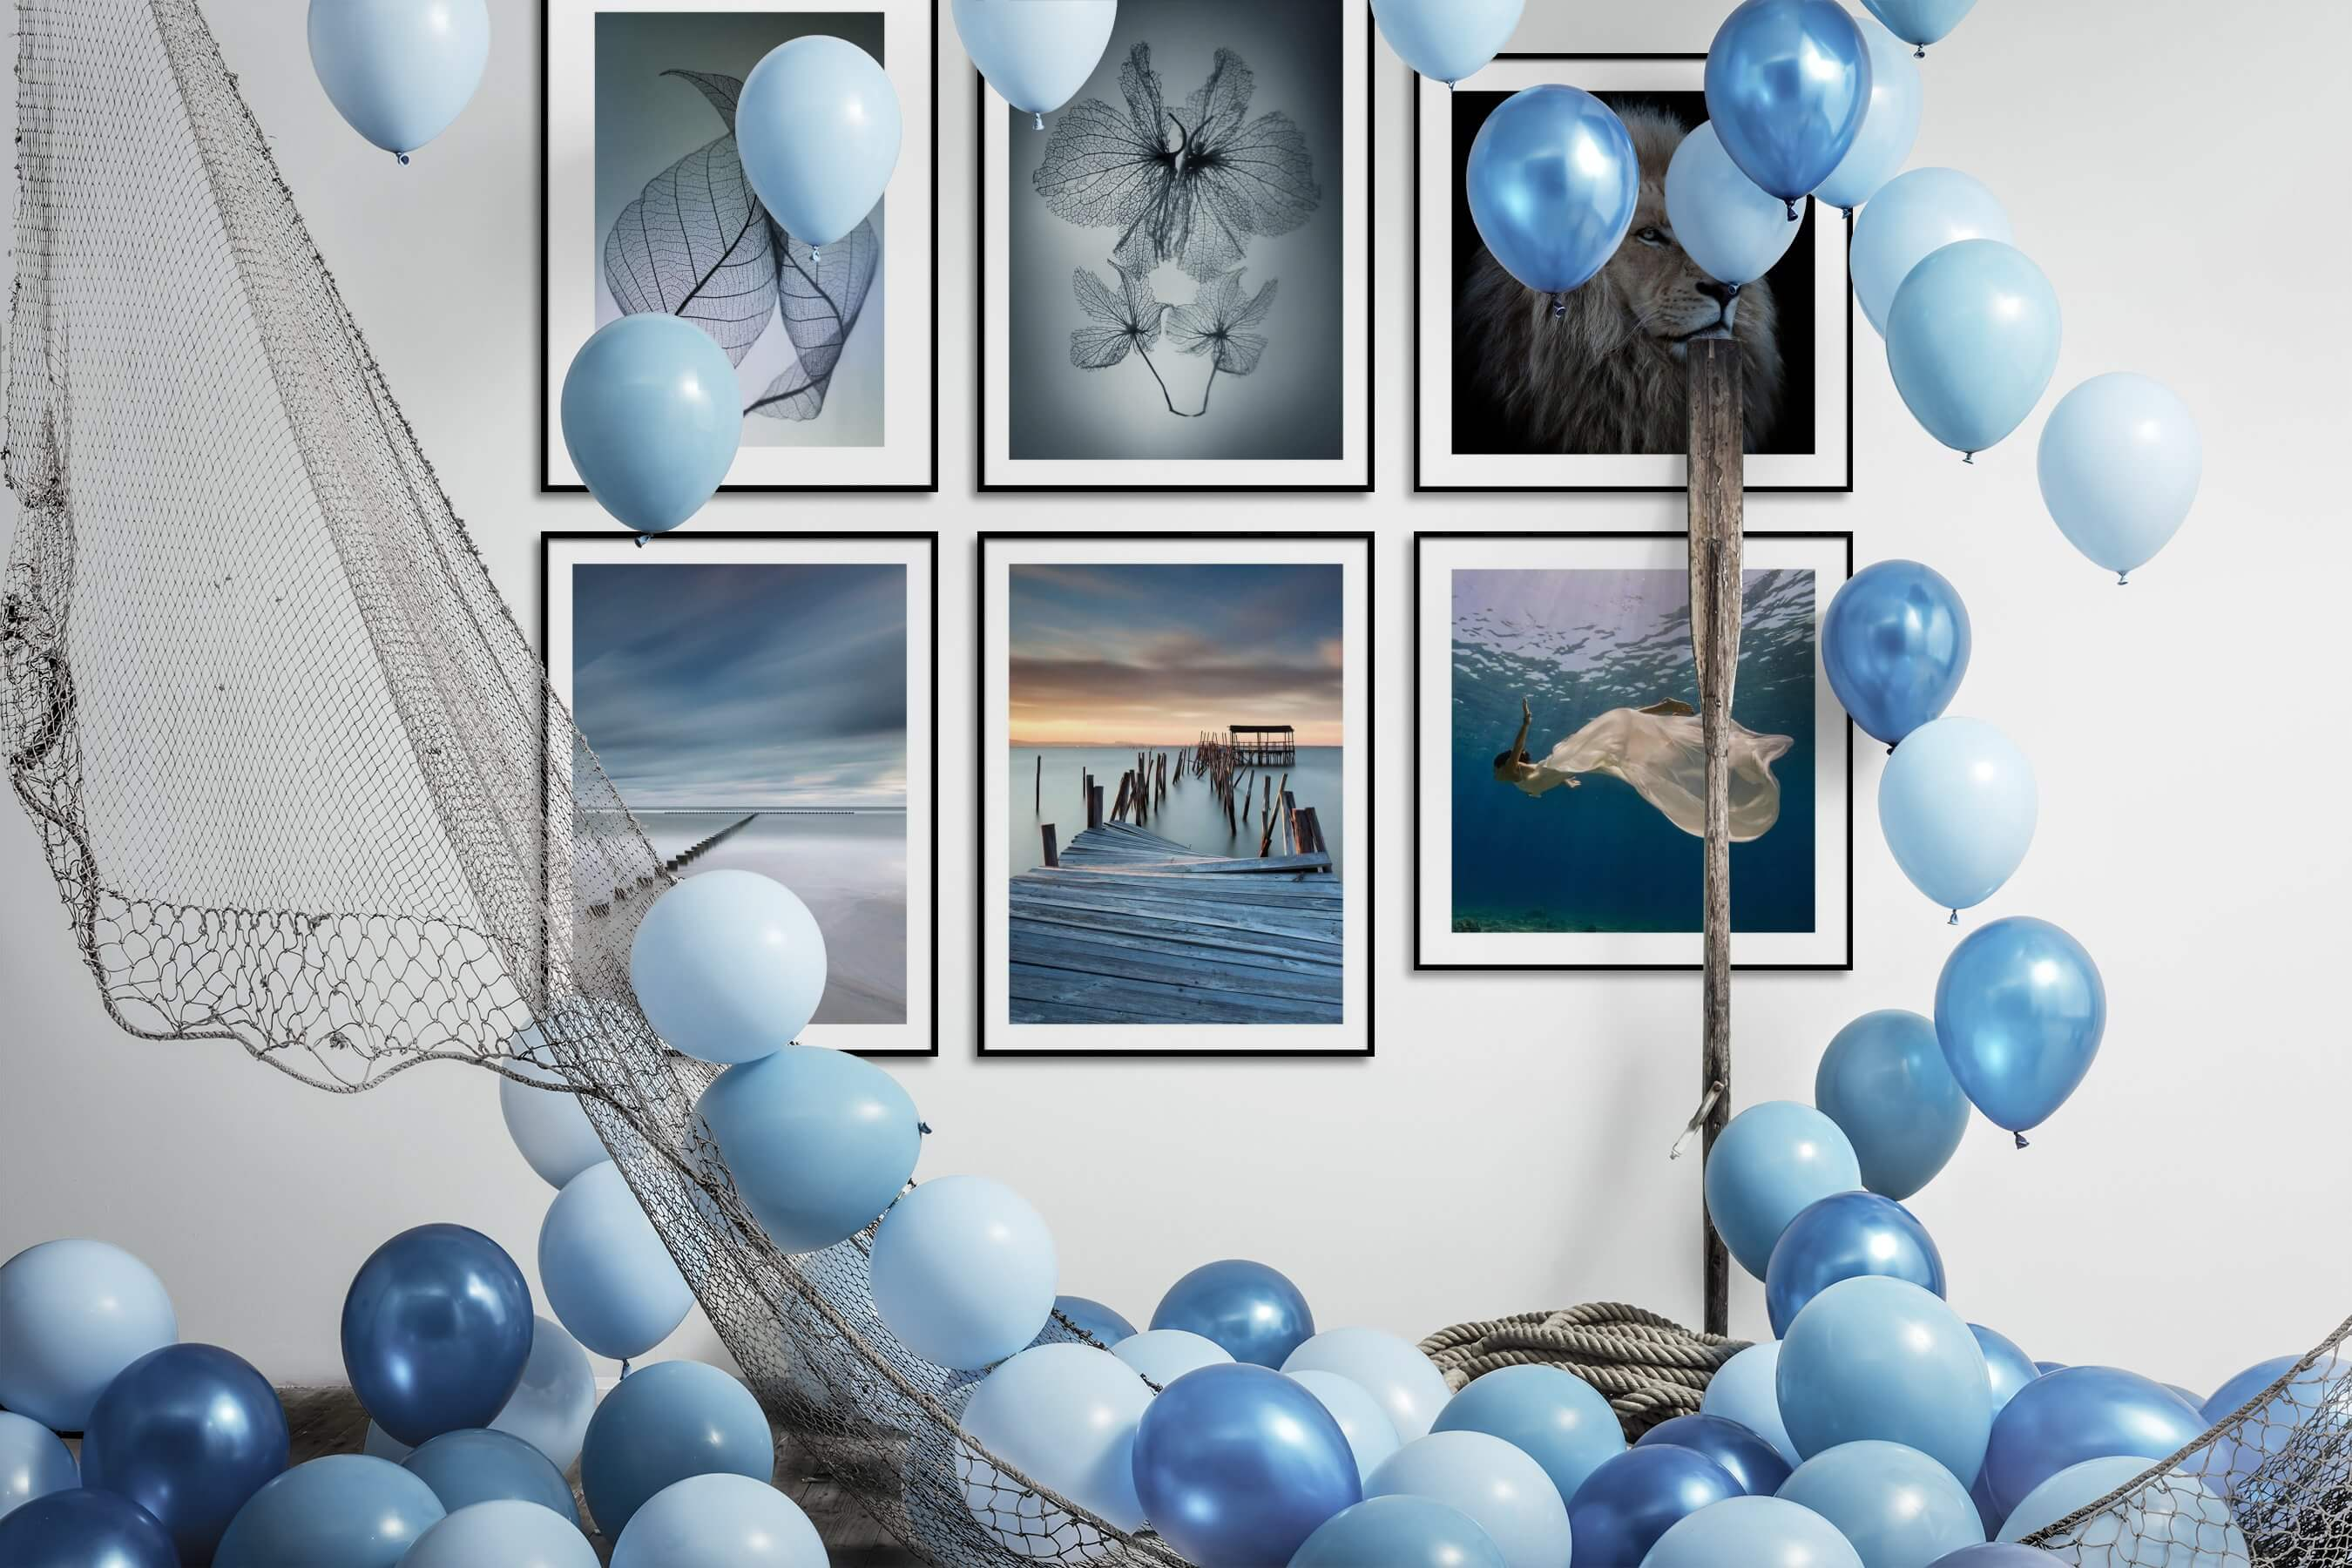 Gallery wall idea with six framed pictures arranged on a wall depicting For the Minimalist, Flowers & Plants, Mindfulness, For the Moderate, Beach & Water, Animals, and Fashion & Beauty